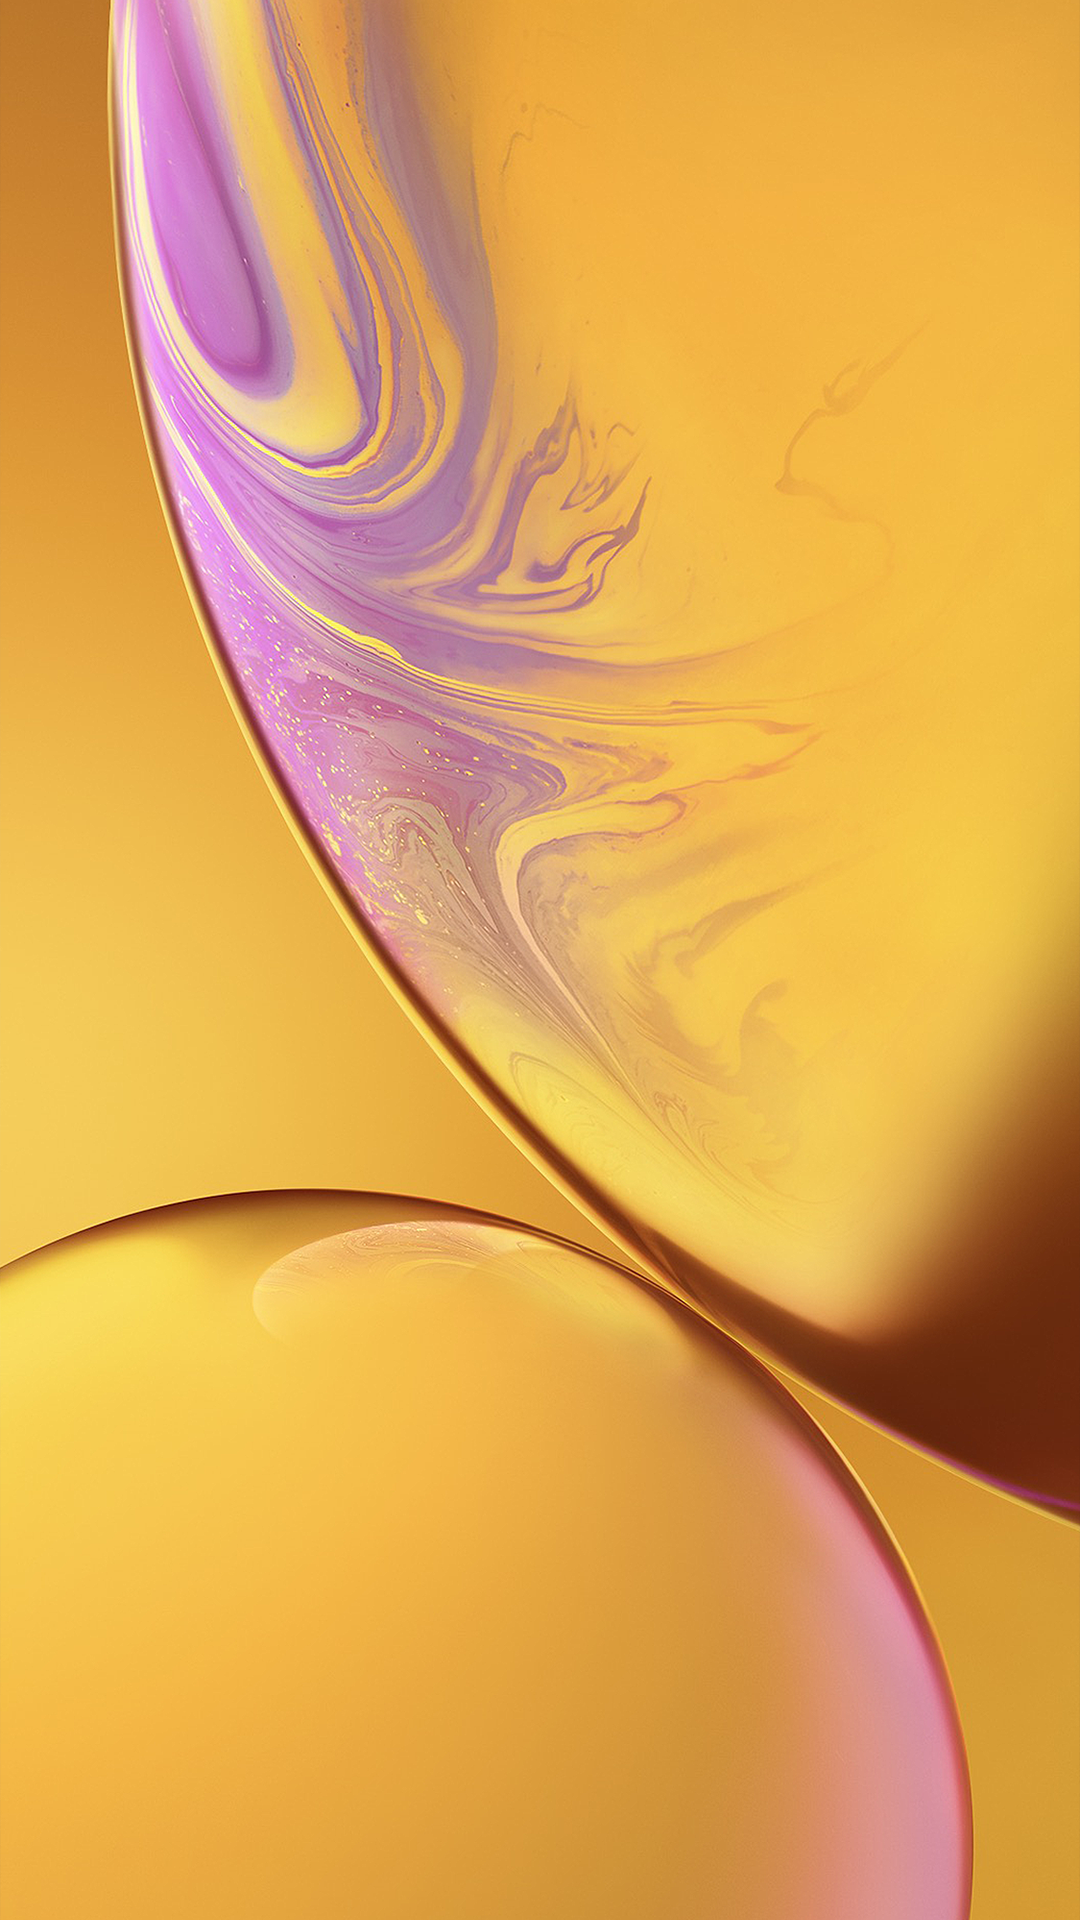 1080x1920 Wallpapers: iPhone Xs, iPhone Xs Max, and iPhone Xr